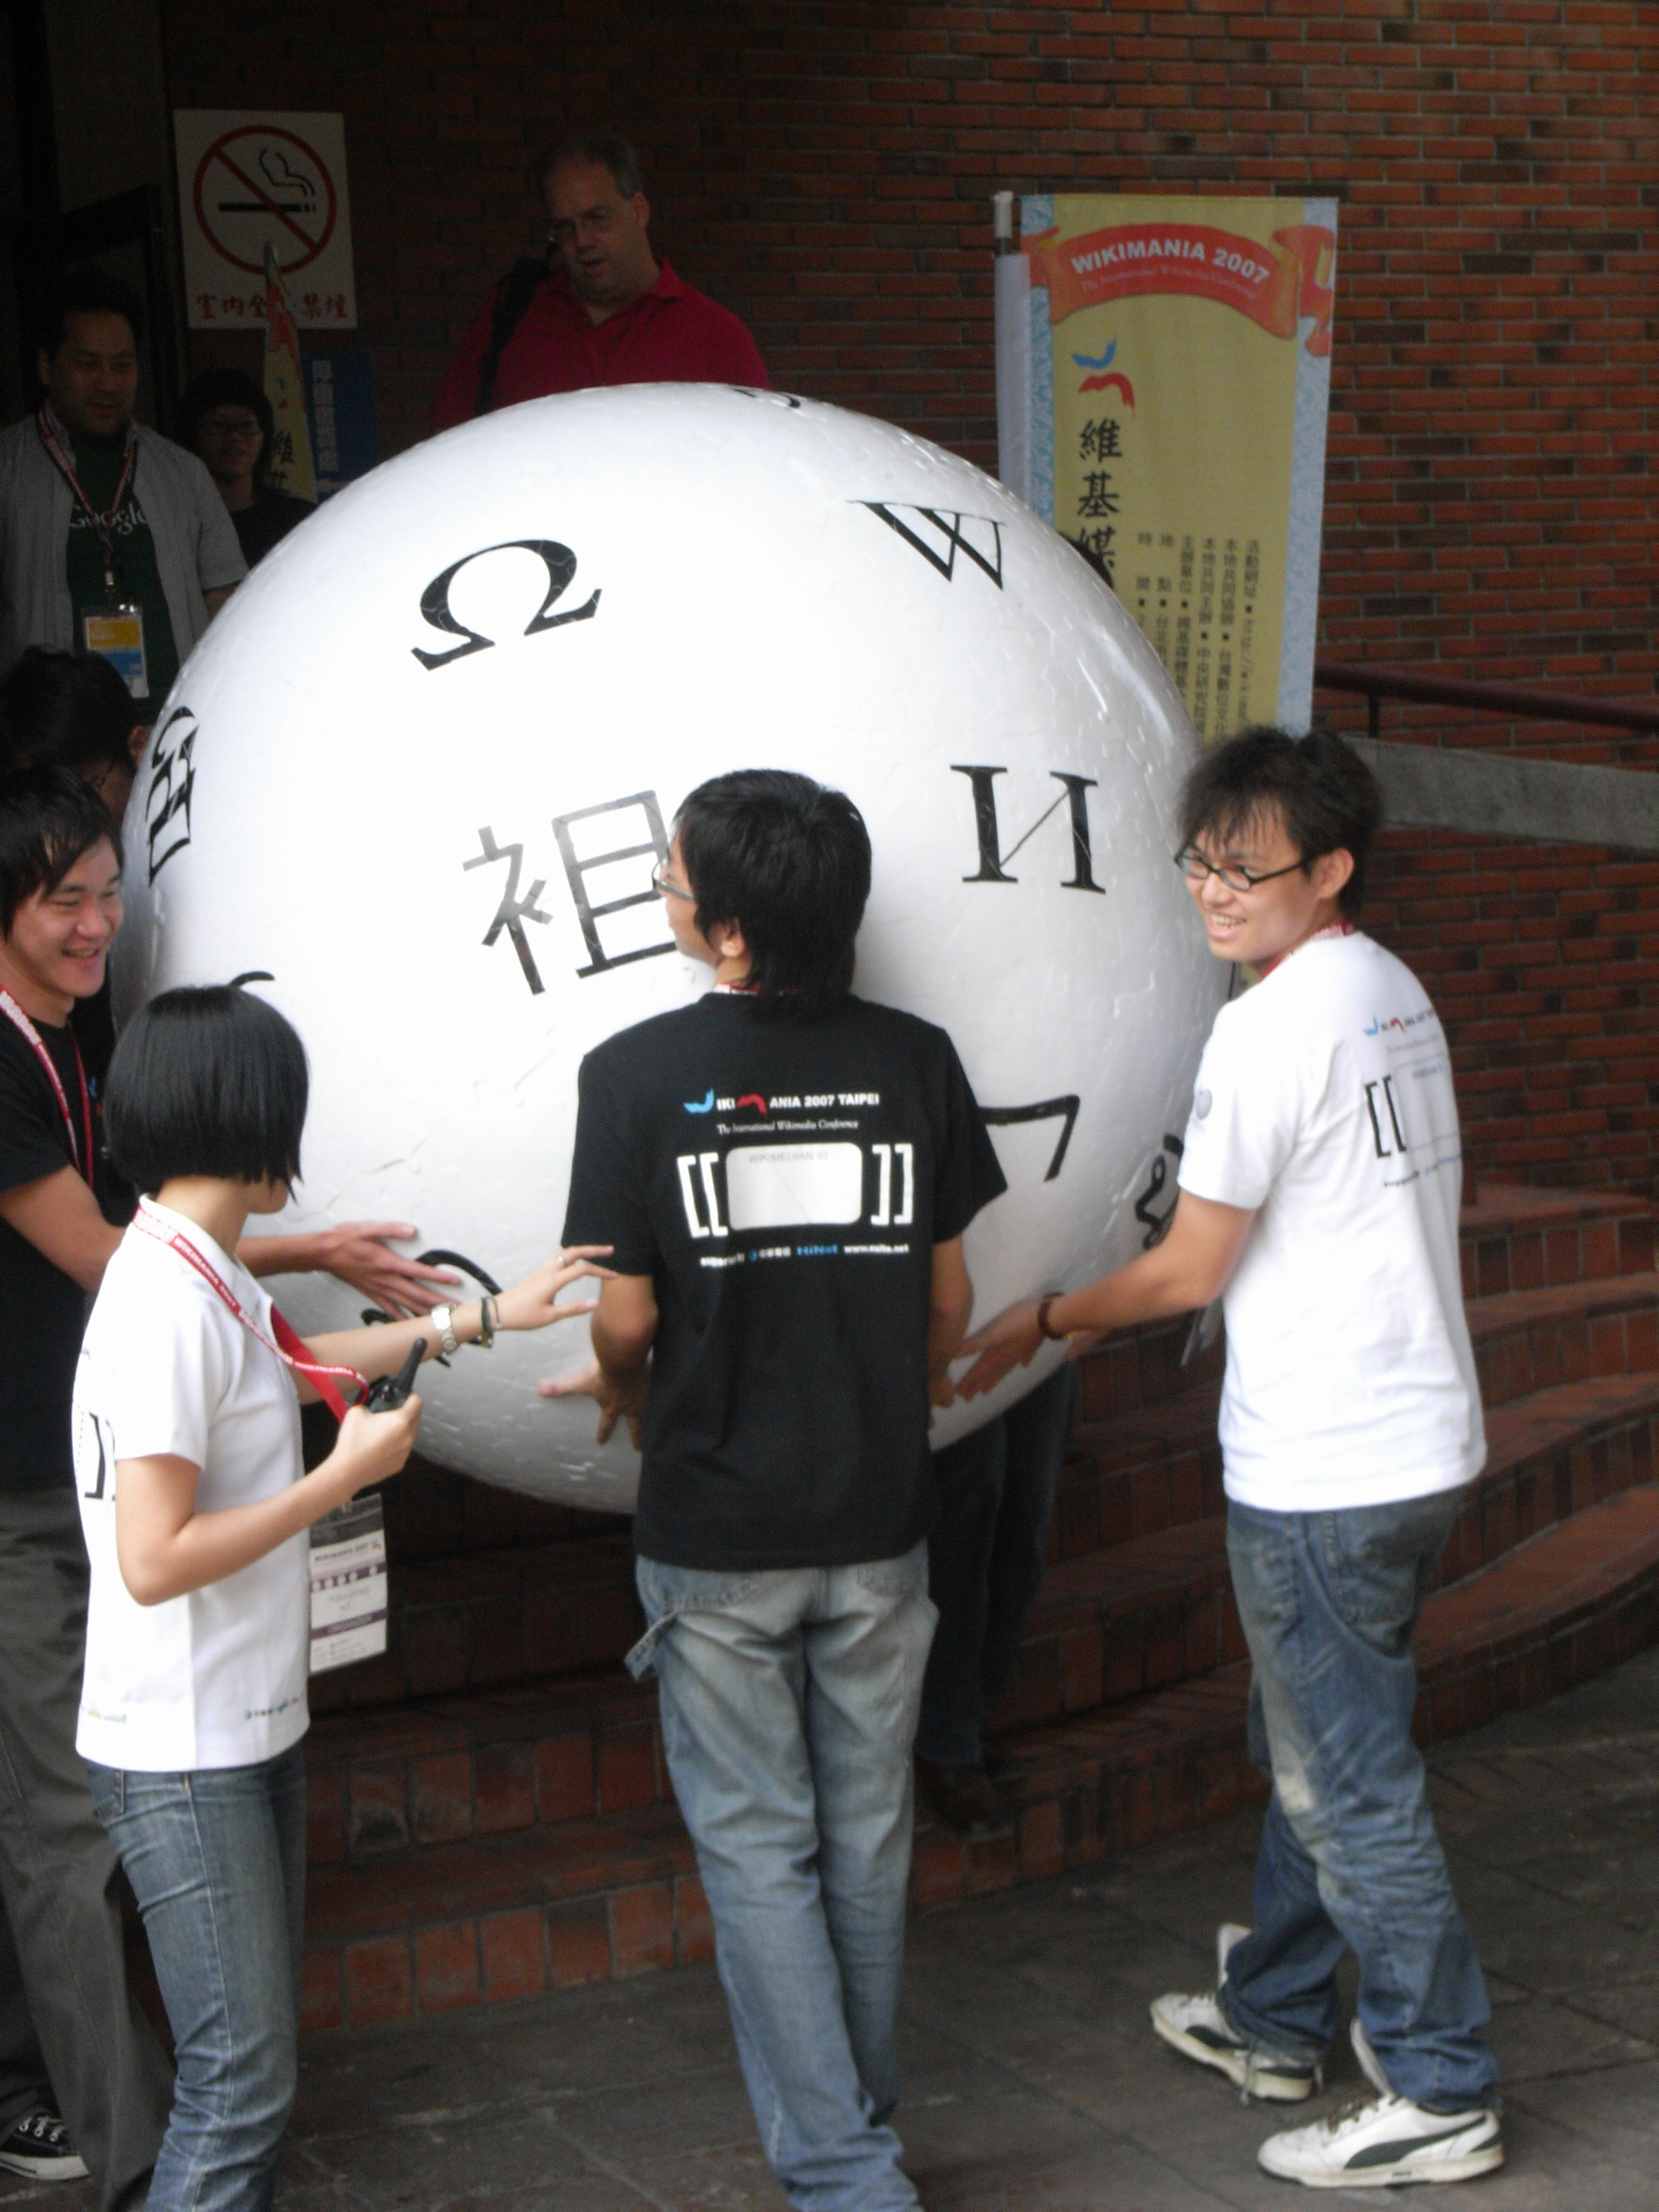 Wikipedia editors in Taiwan at the annual Wikimedia conference, 2007